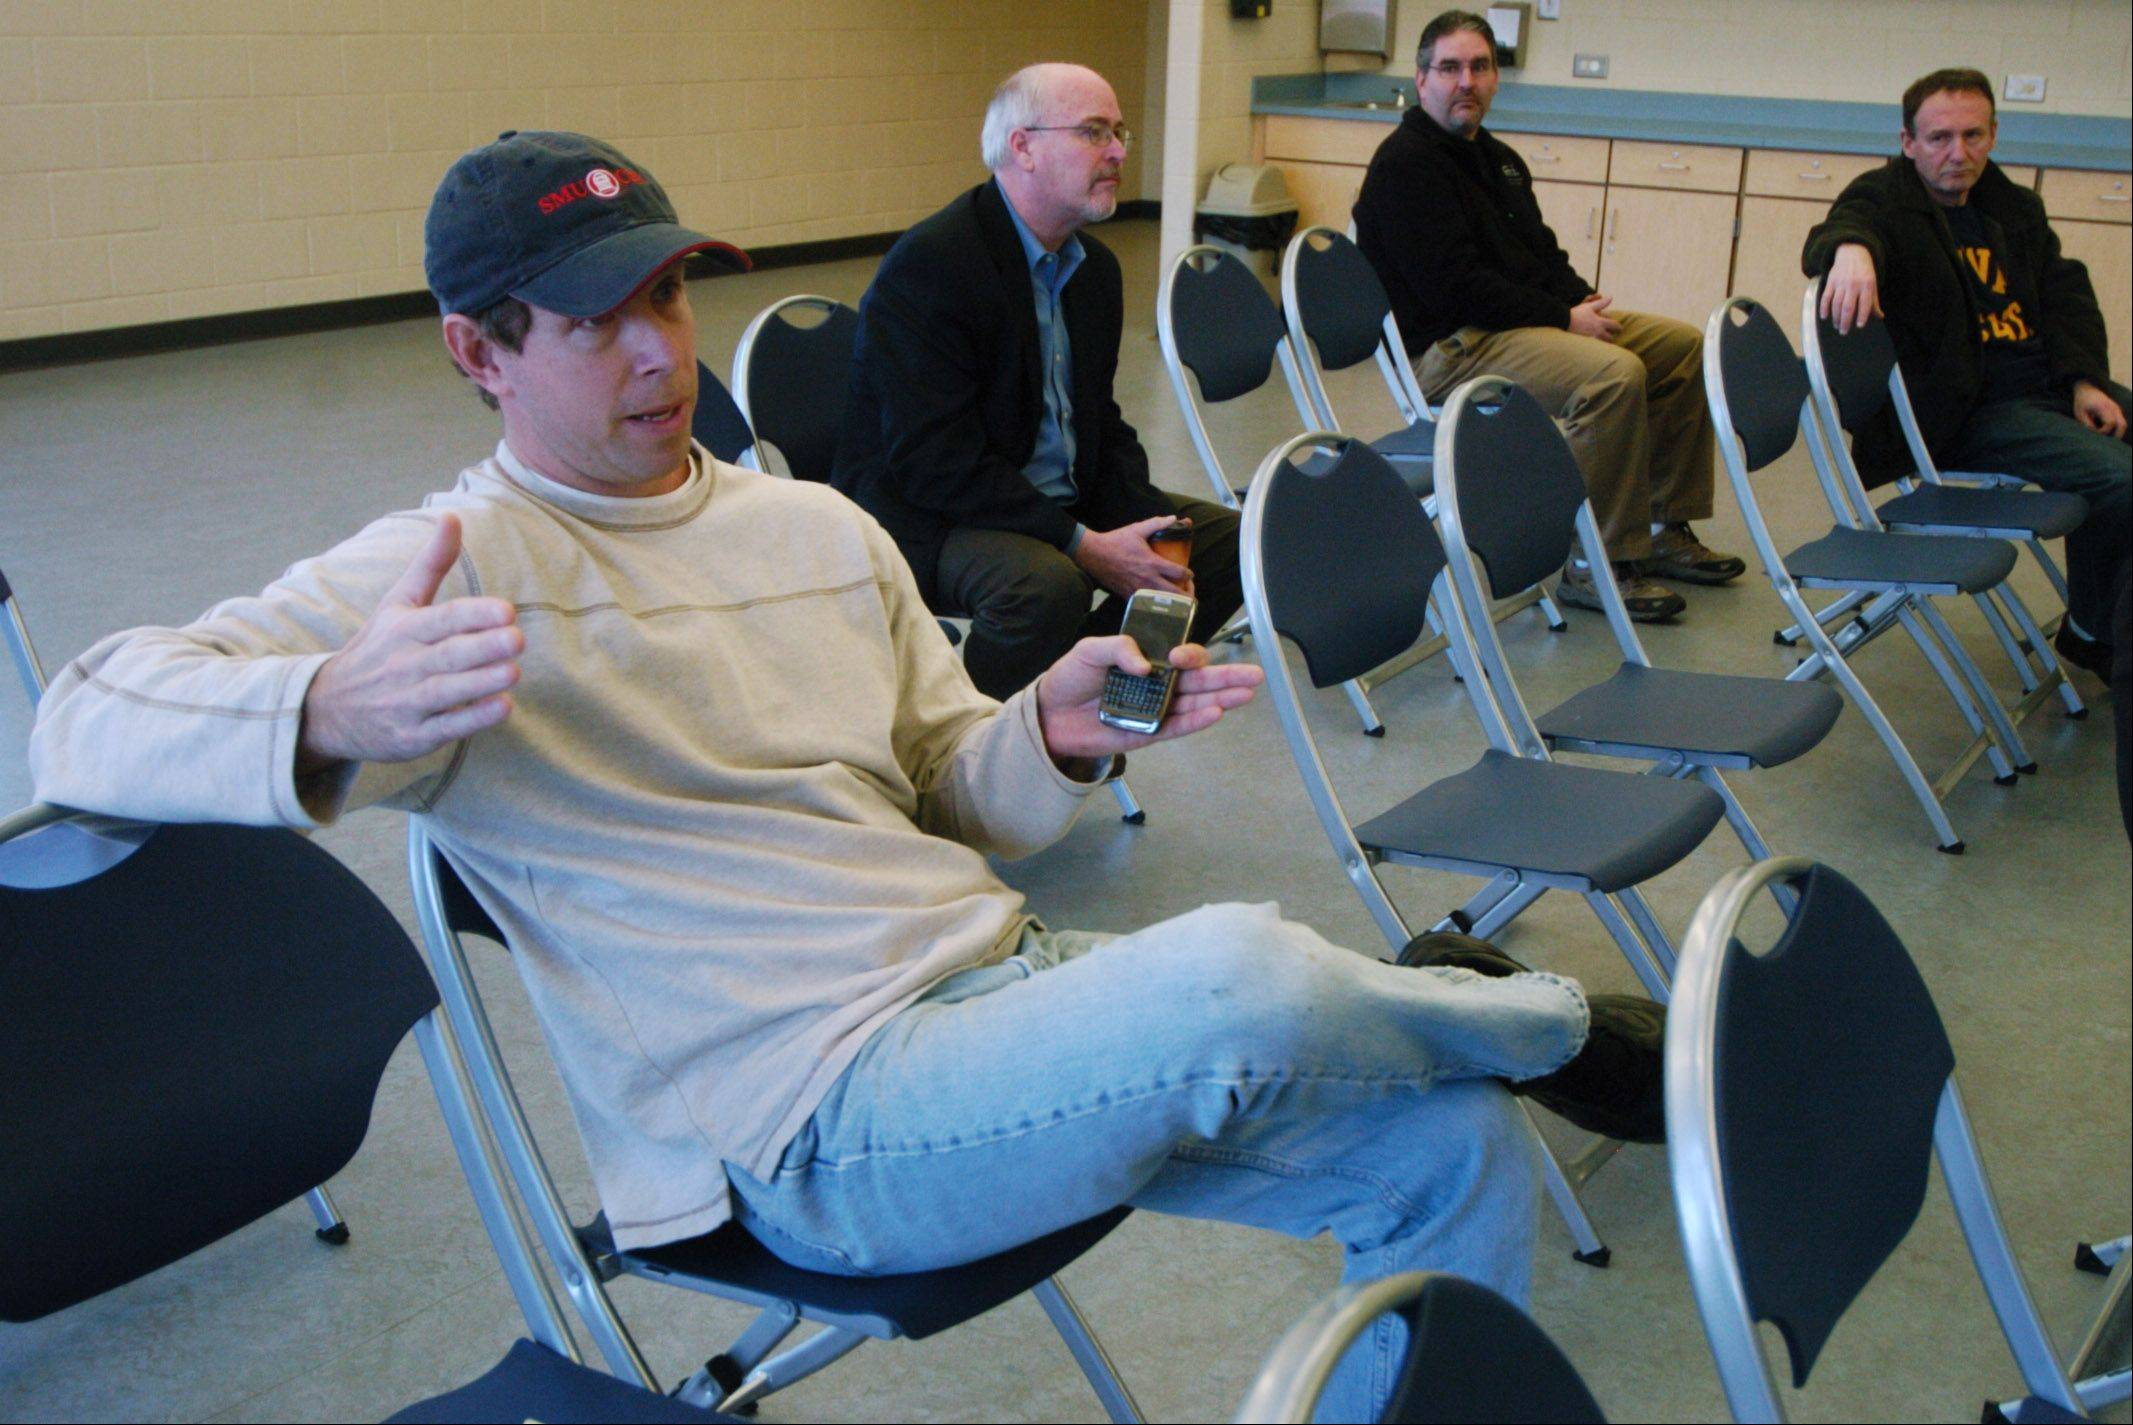 Craig Niemiec of Arlington Heights asks a question during an Arlington Heights Park District forum held at Pioneer Park Saturday to discuss a $48 million ballot referendum.